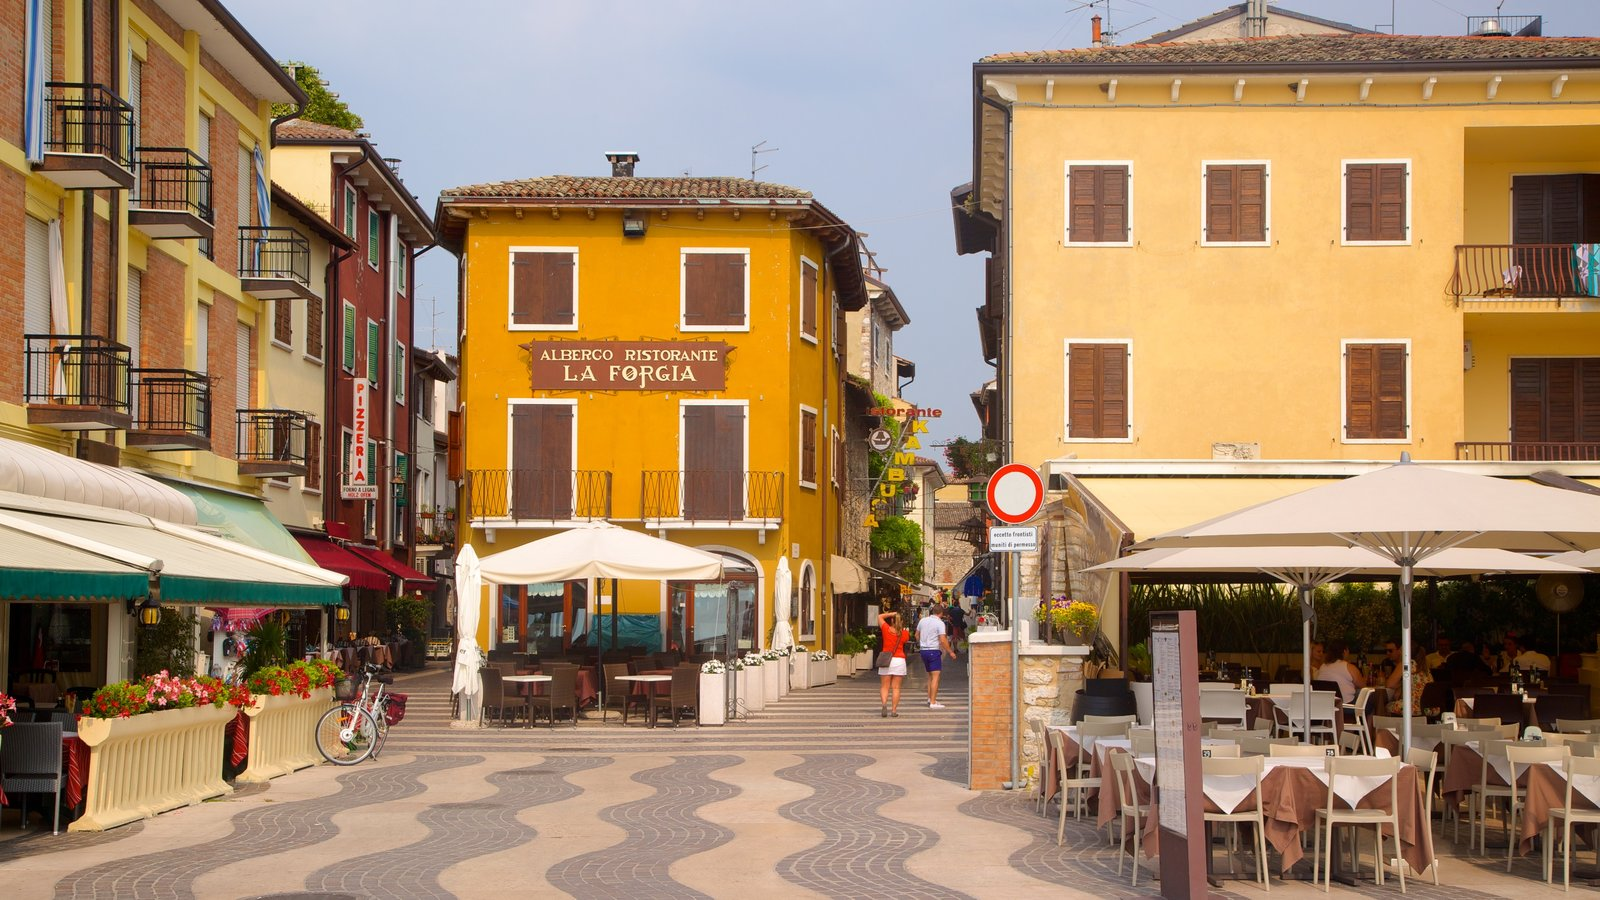 Lazise featuring a city